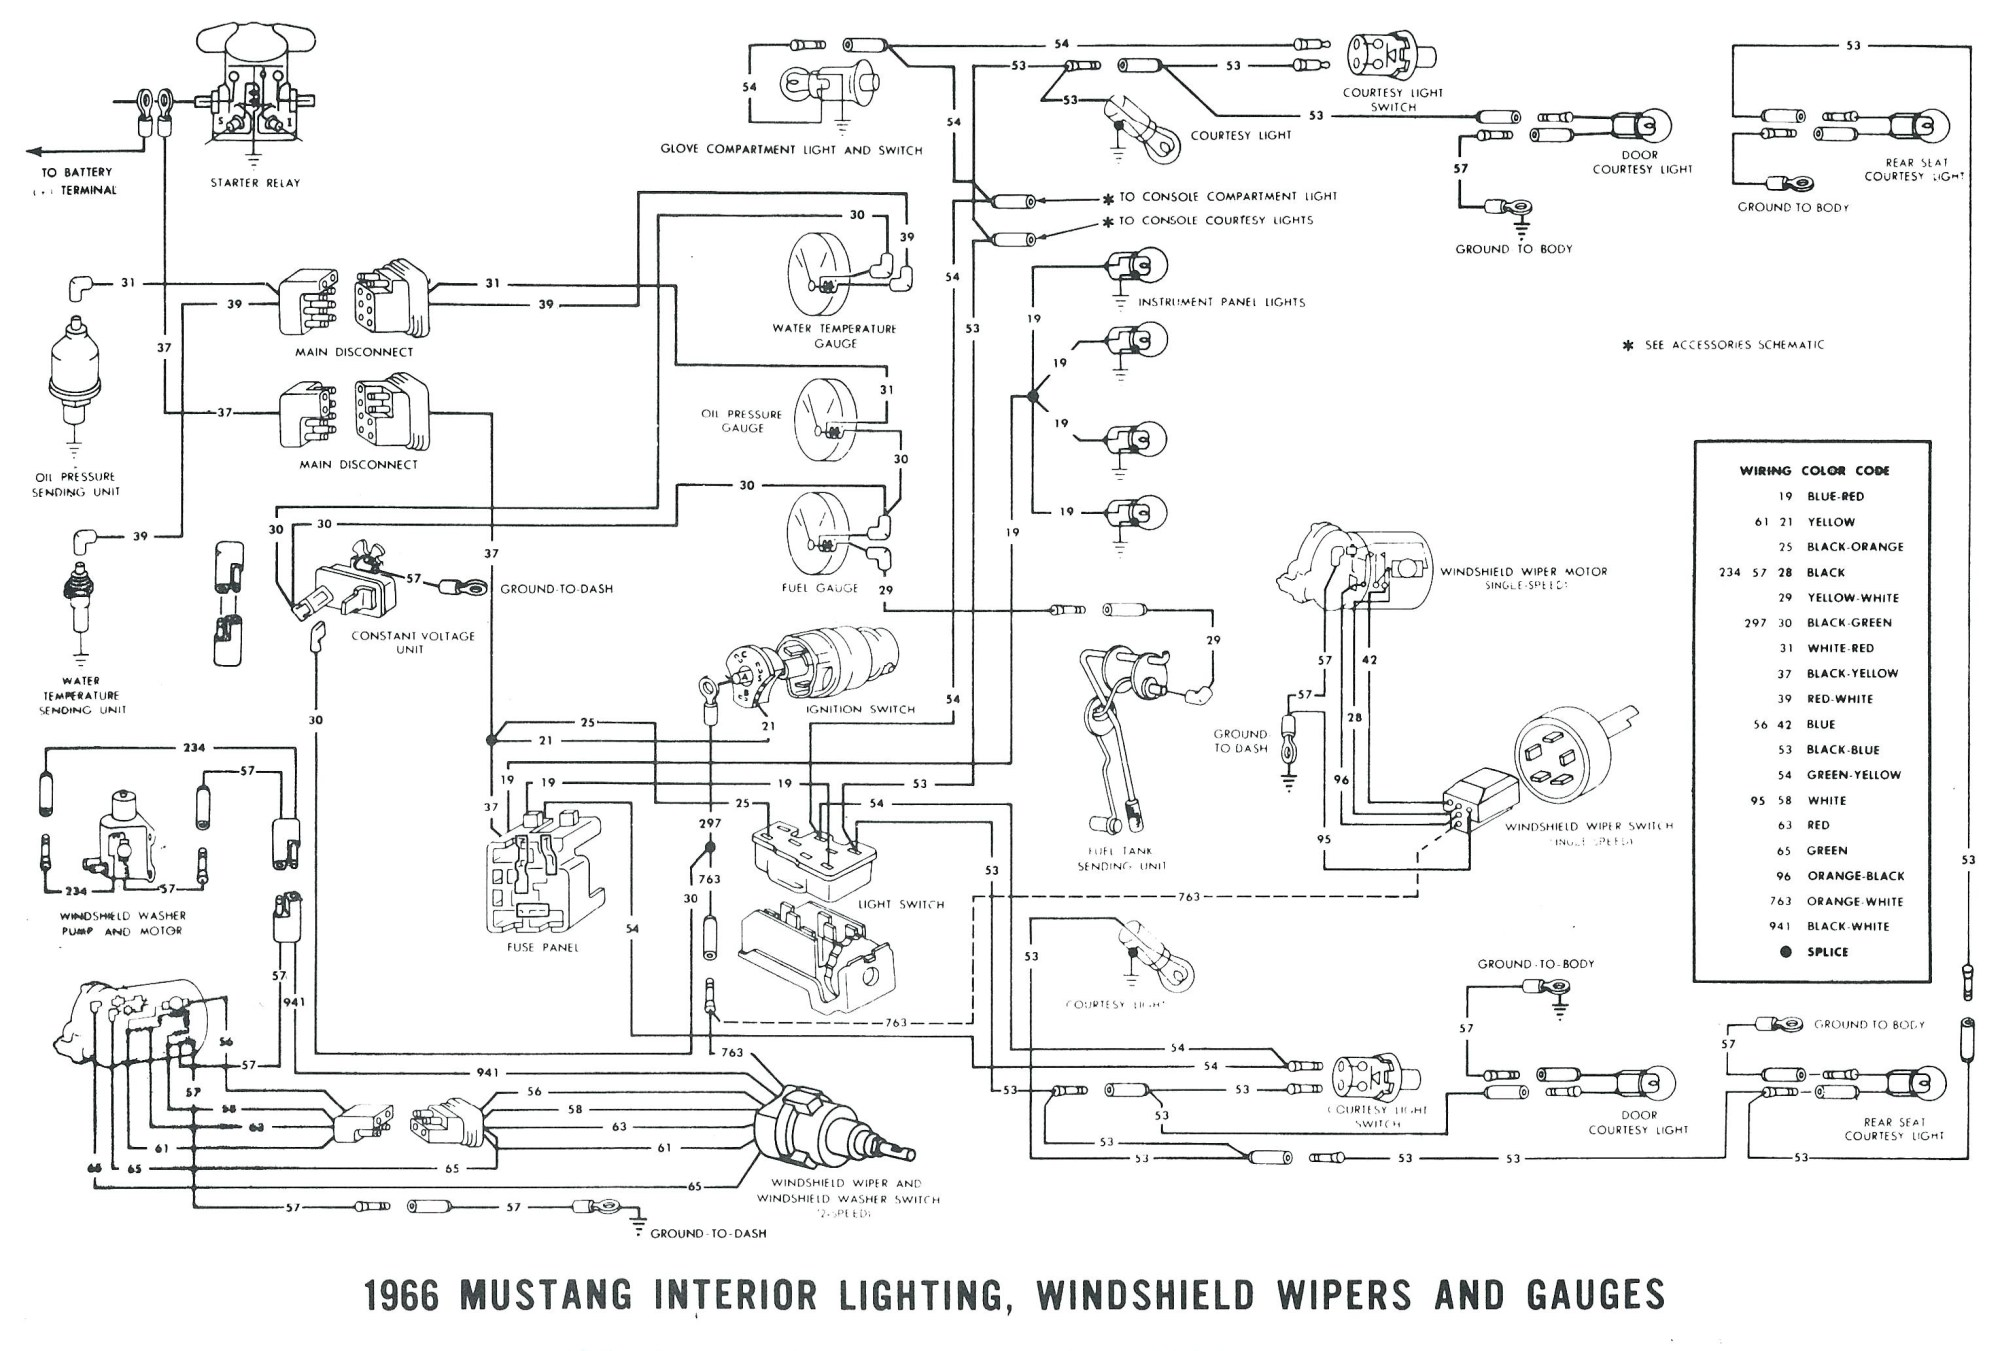 hight resolution of 1990 mustang alternator wiring diagram simple wiring schema 69 camaro wiring diagram 90 mustang alternator wiring